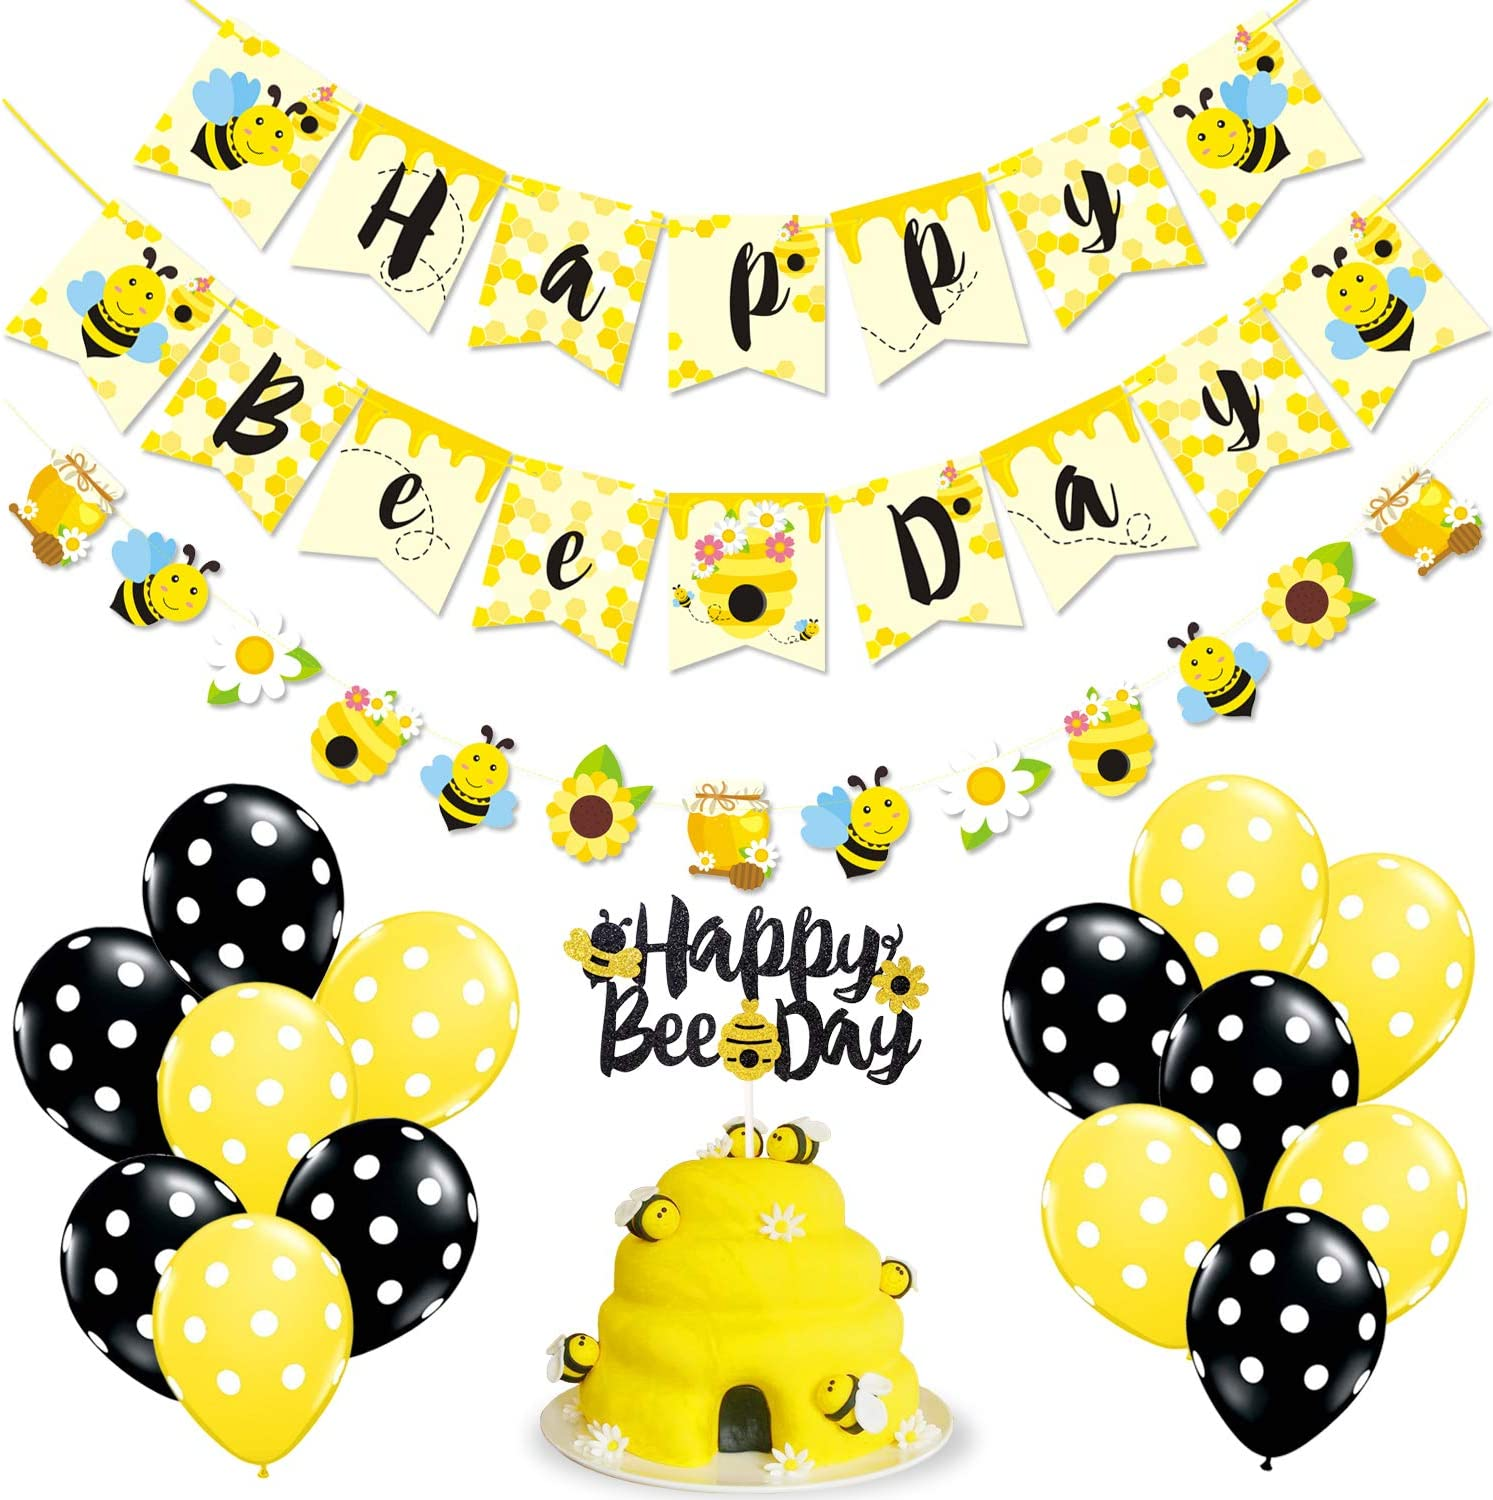 Bumble Bee Party Supplies include Sunflower Happy Bee Day Banner